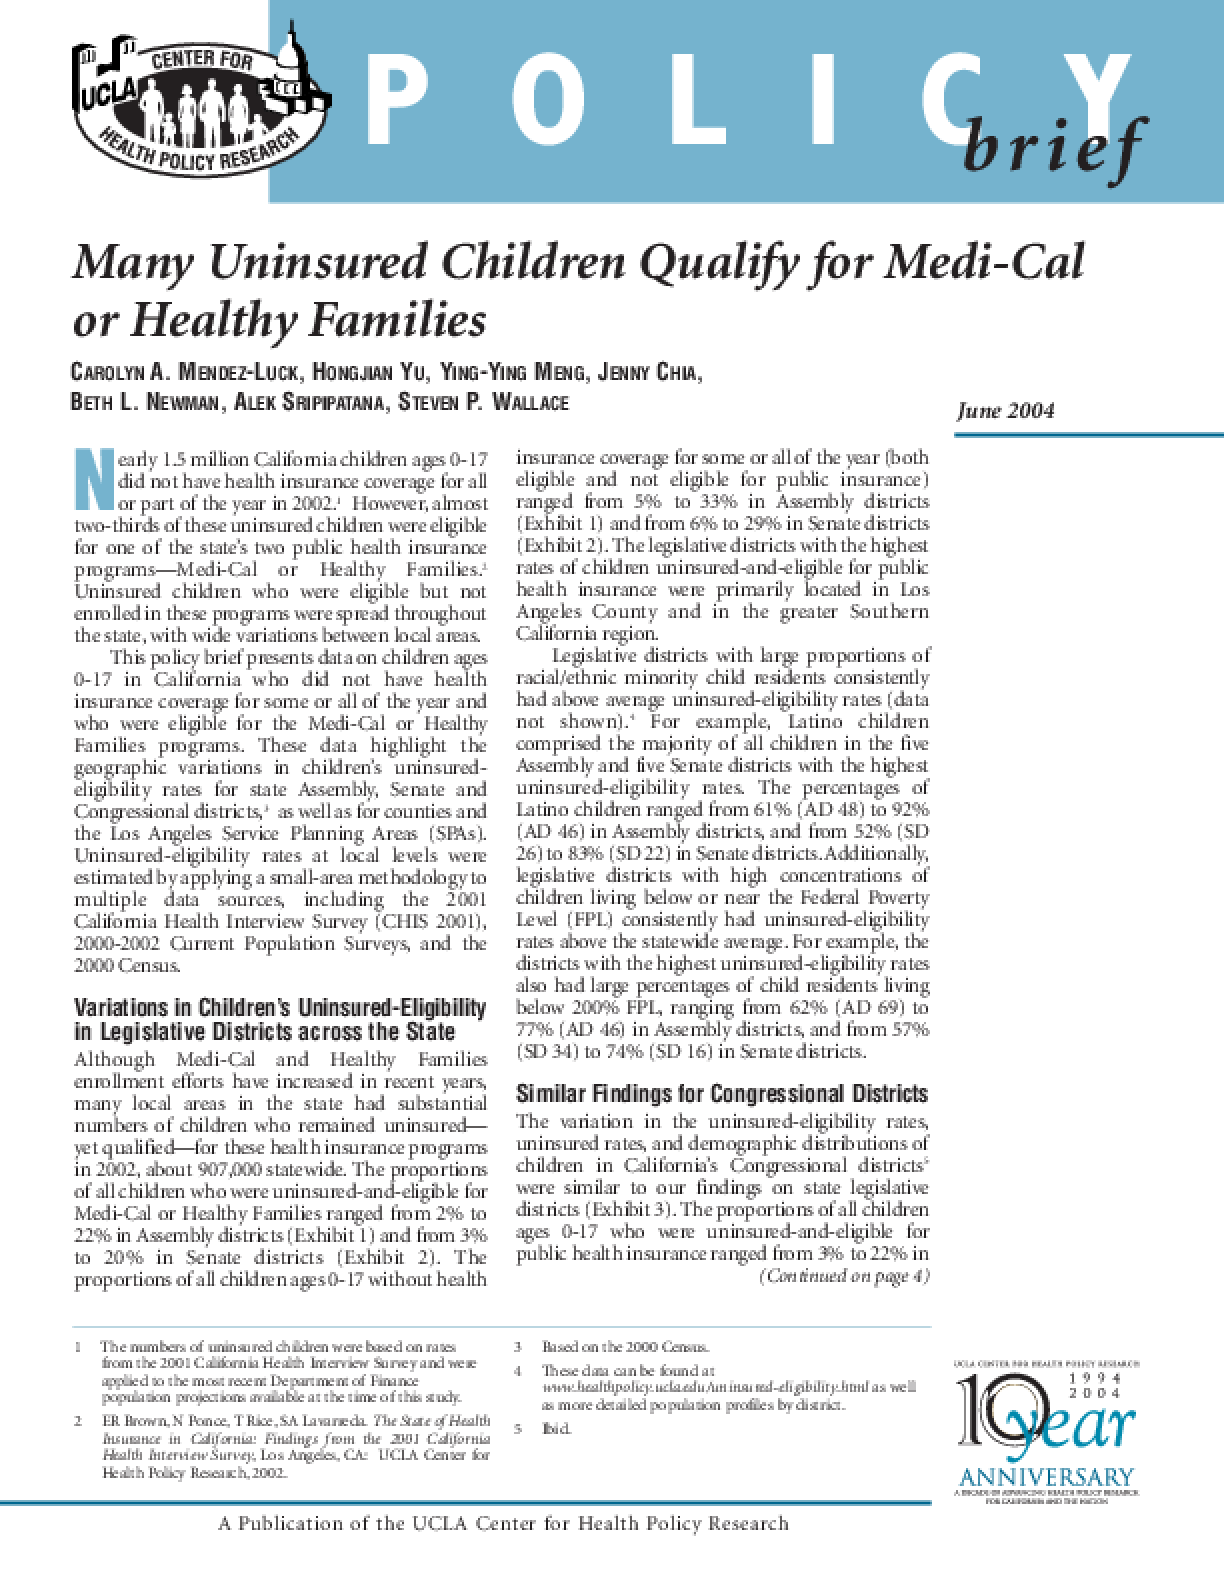 Many Uninsured Children Qualify for Medi-Cal or Healthy Families